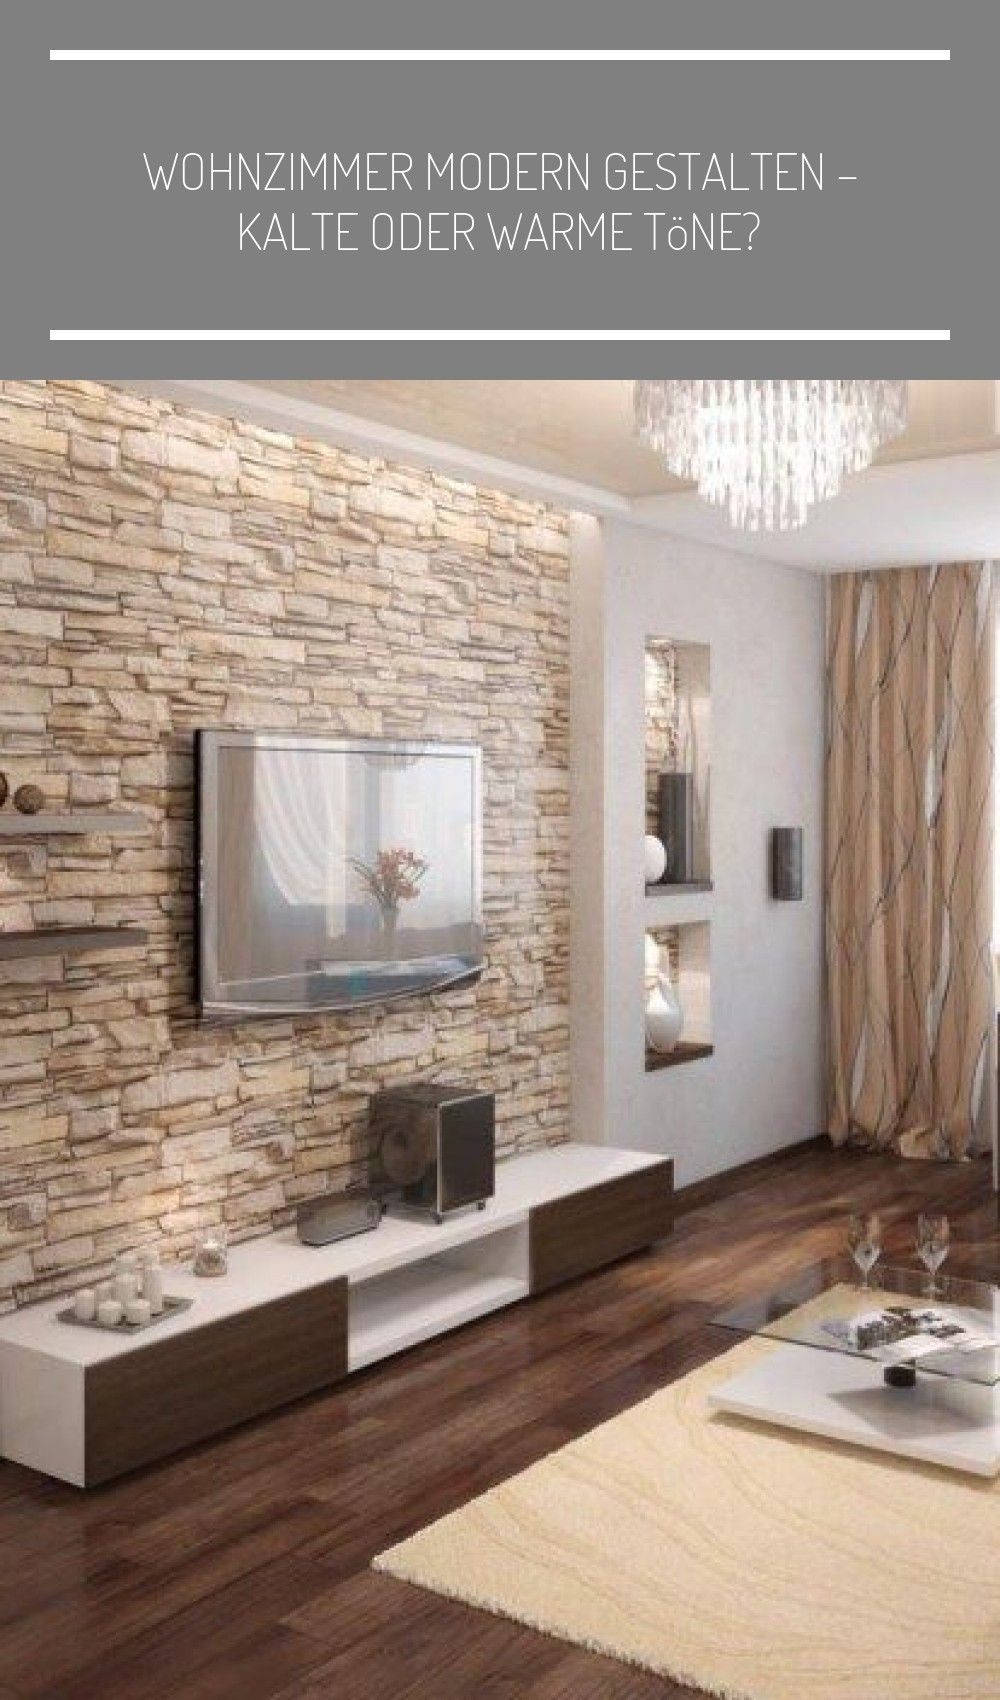 Wohnzimmer Modern Gestalten In 2020 Dining Room Wallpaper Natural Stone Wall Brown Living Room